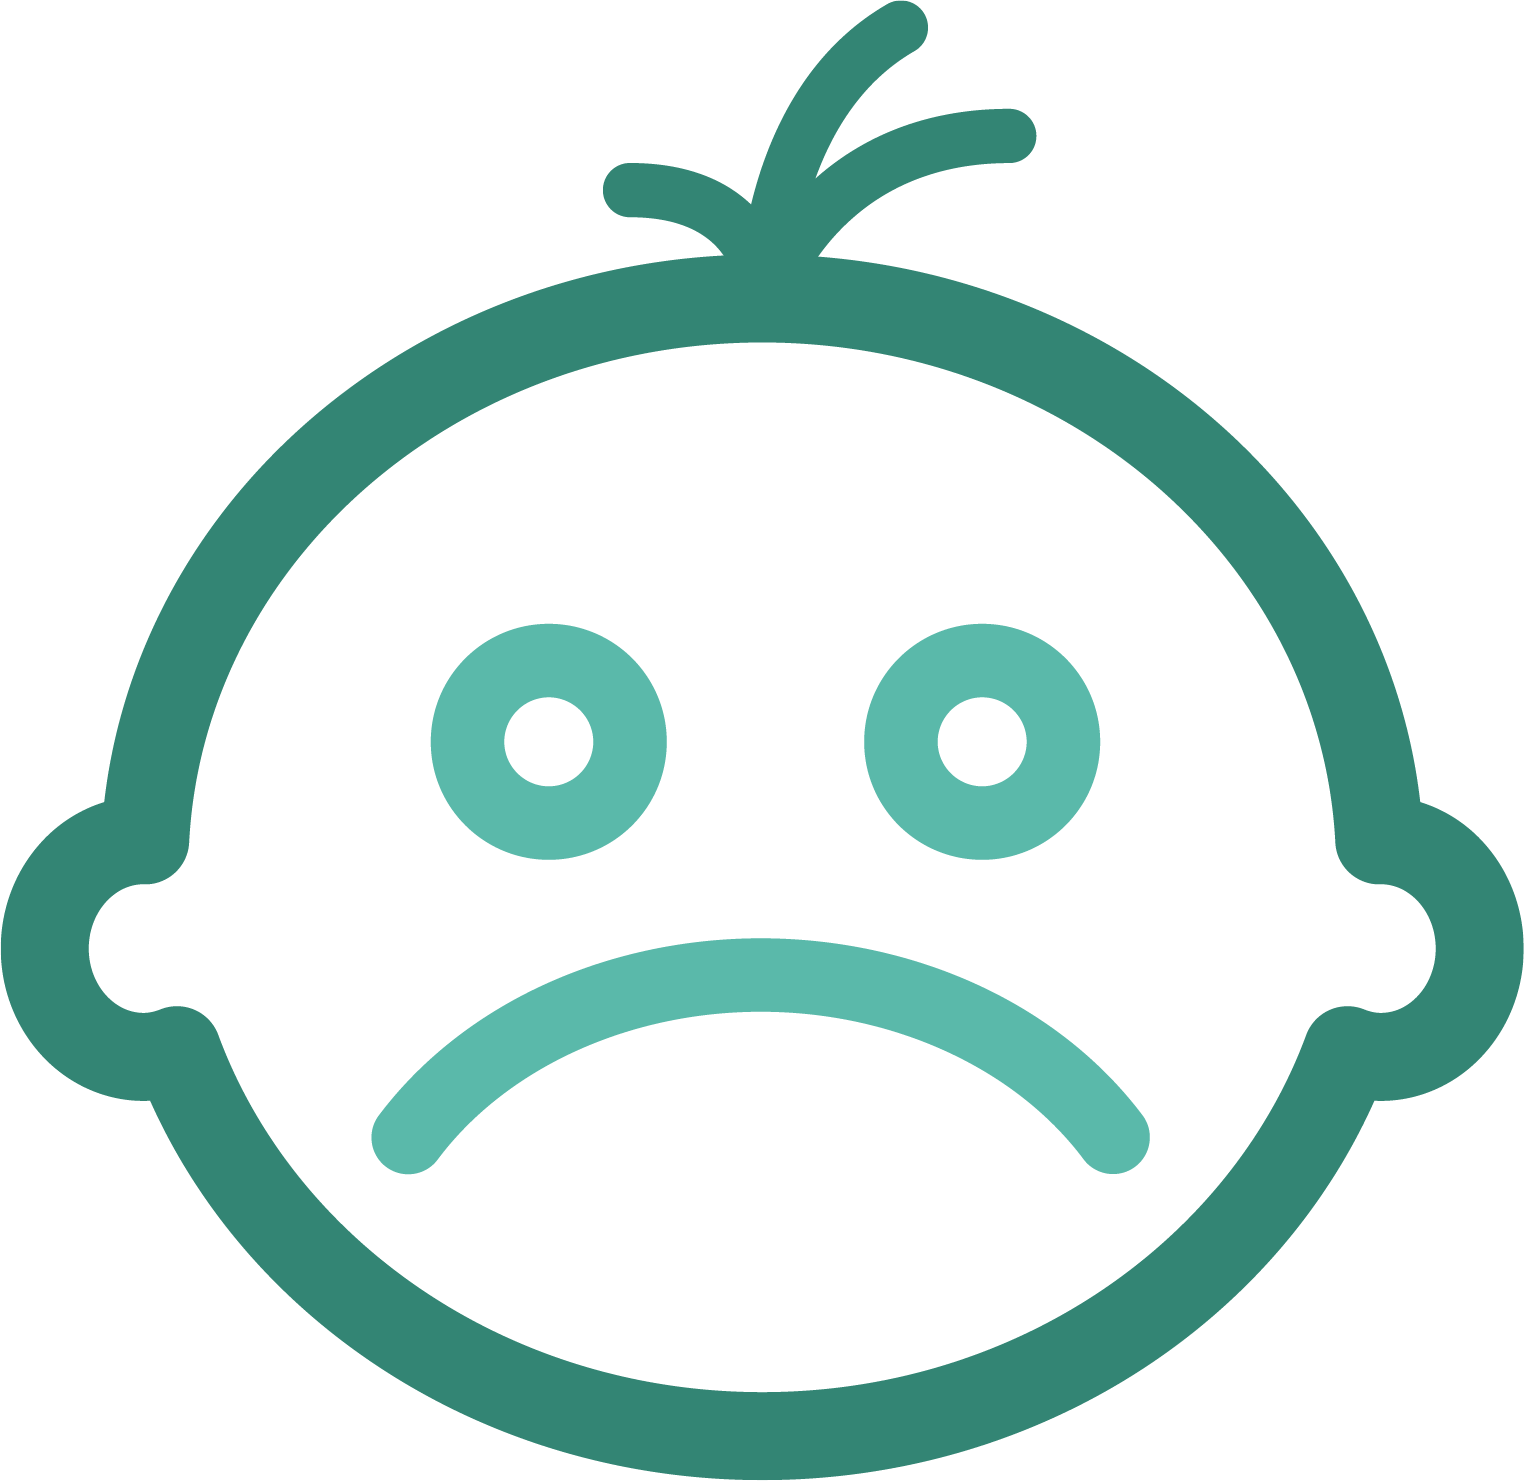 Green sad face icon